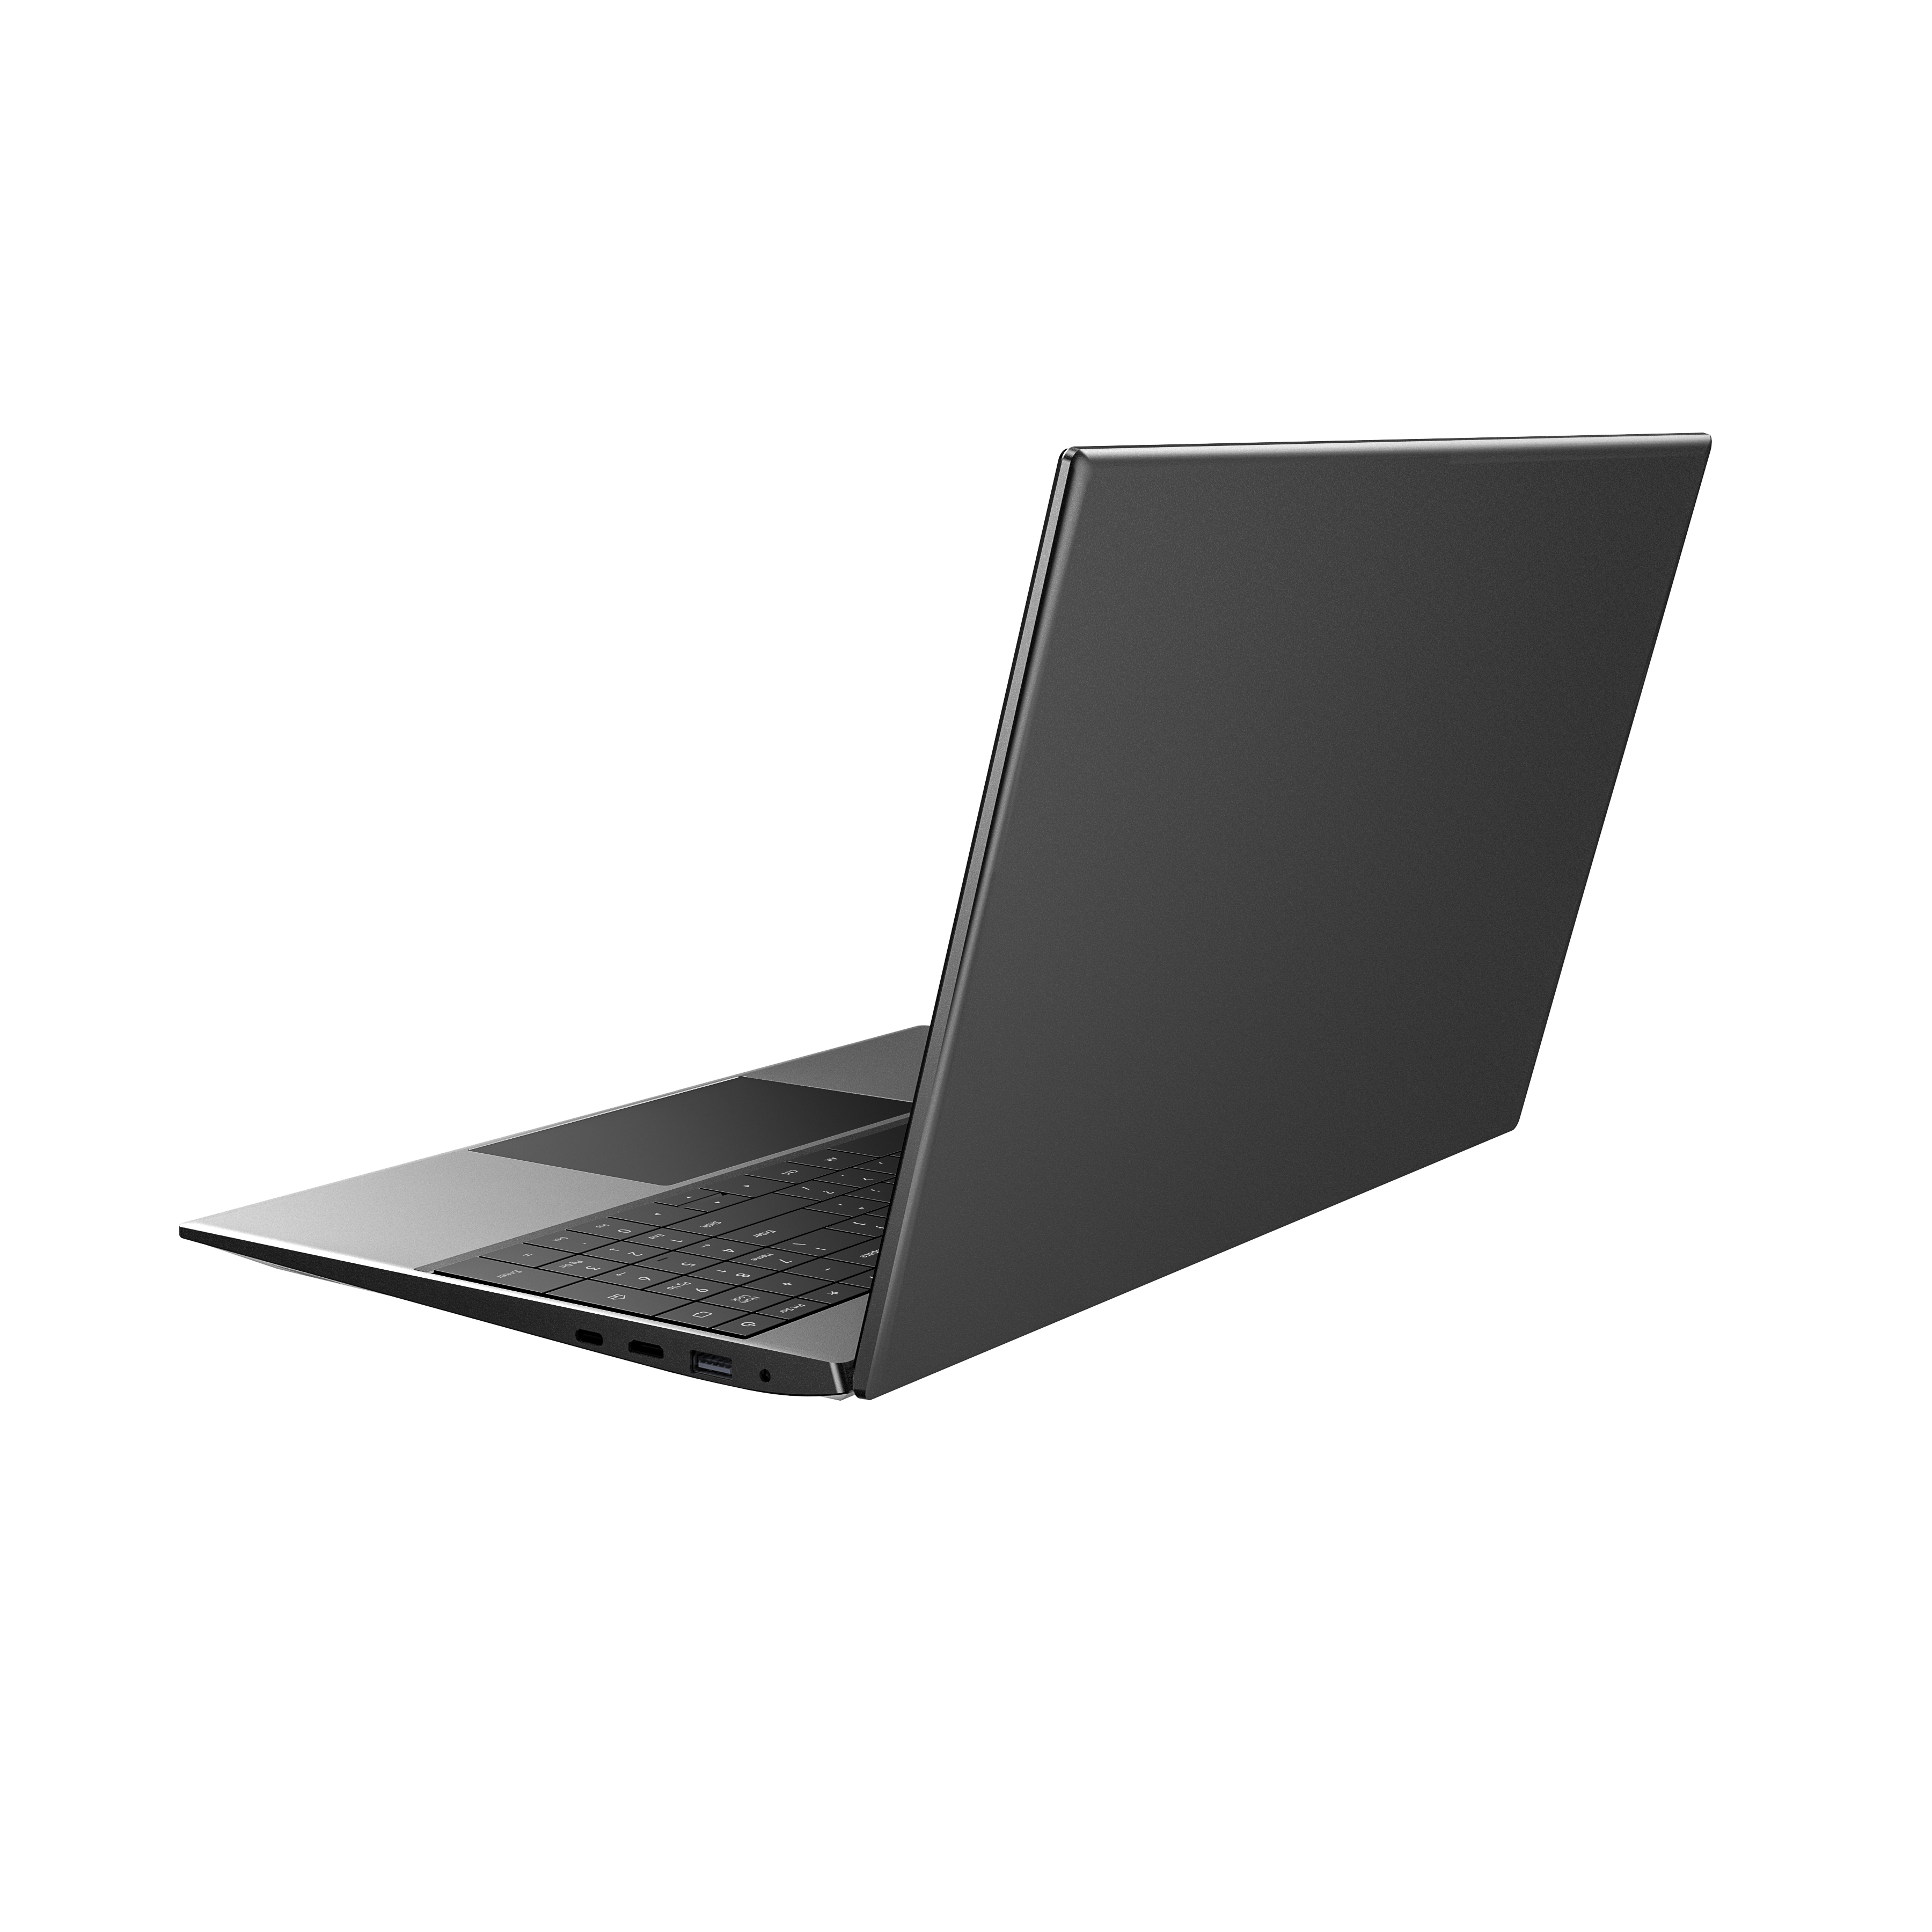 DERE DG1 15.6 inch Full View Display Laptop Computer Itel i5-10210U 8GB RAM 256GB ROM with Intel Xe Max Graphic Card for Office